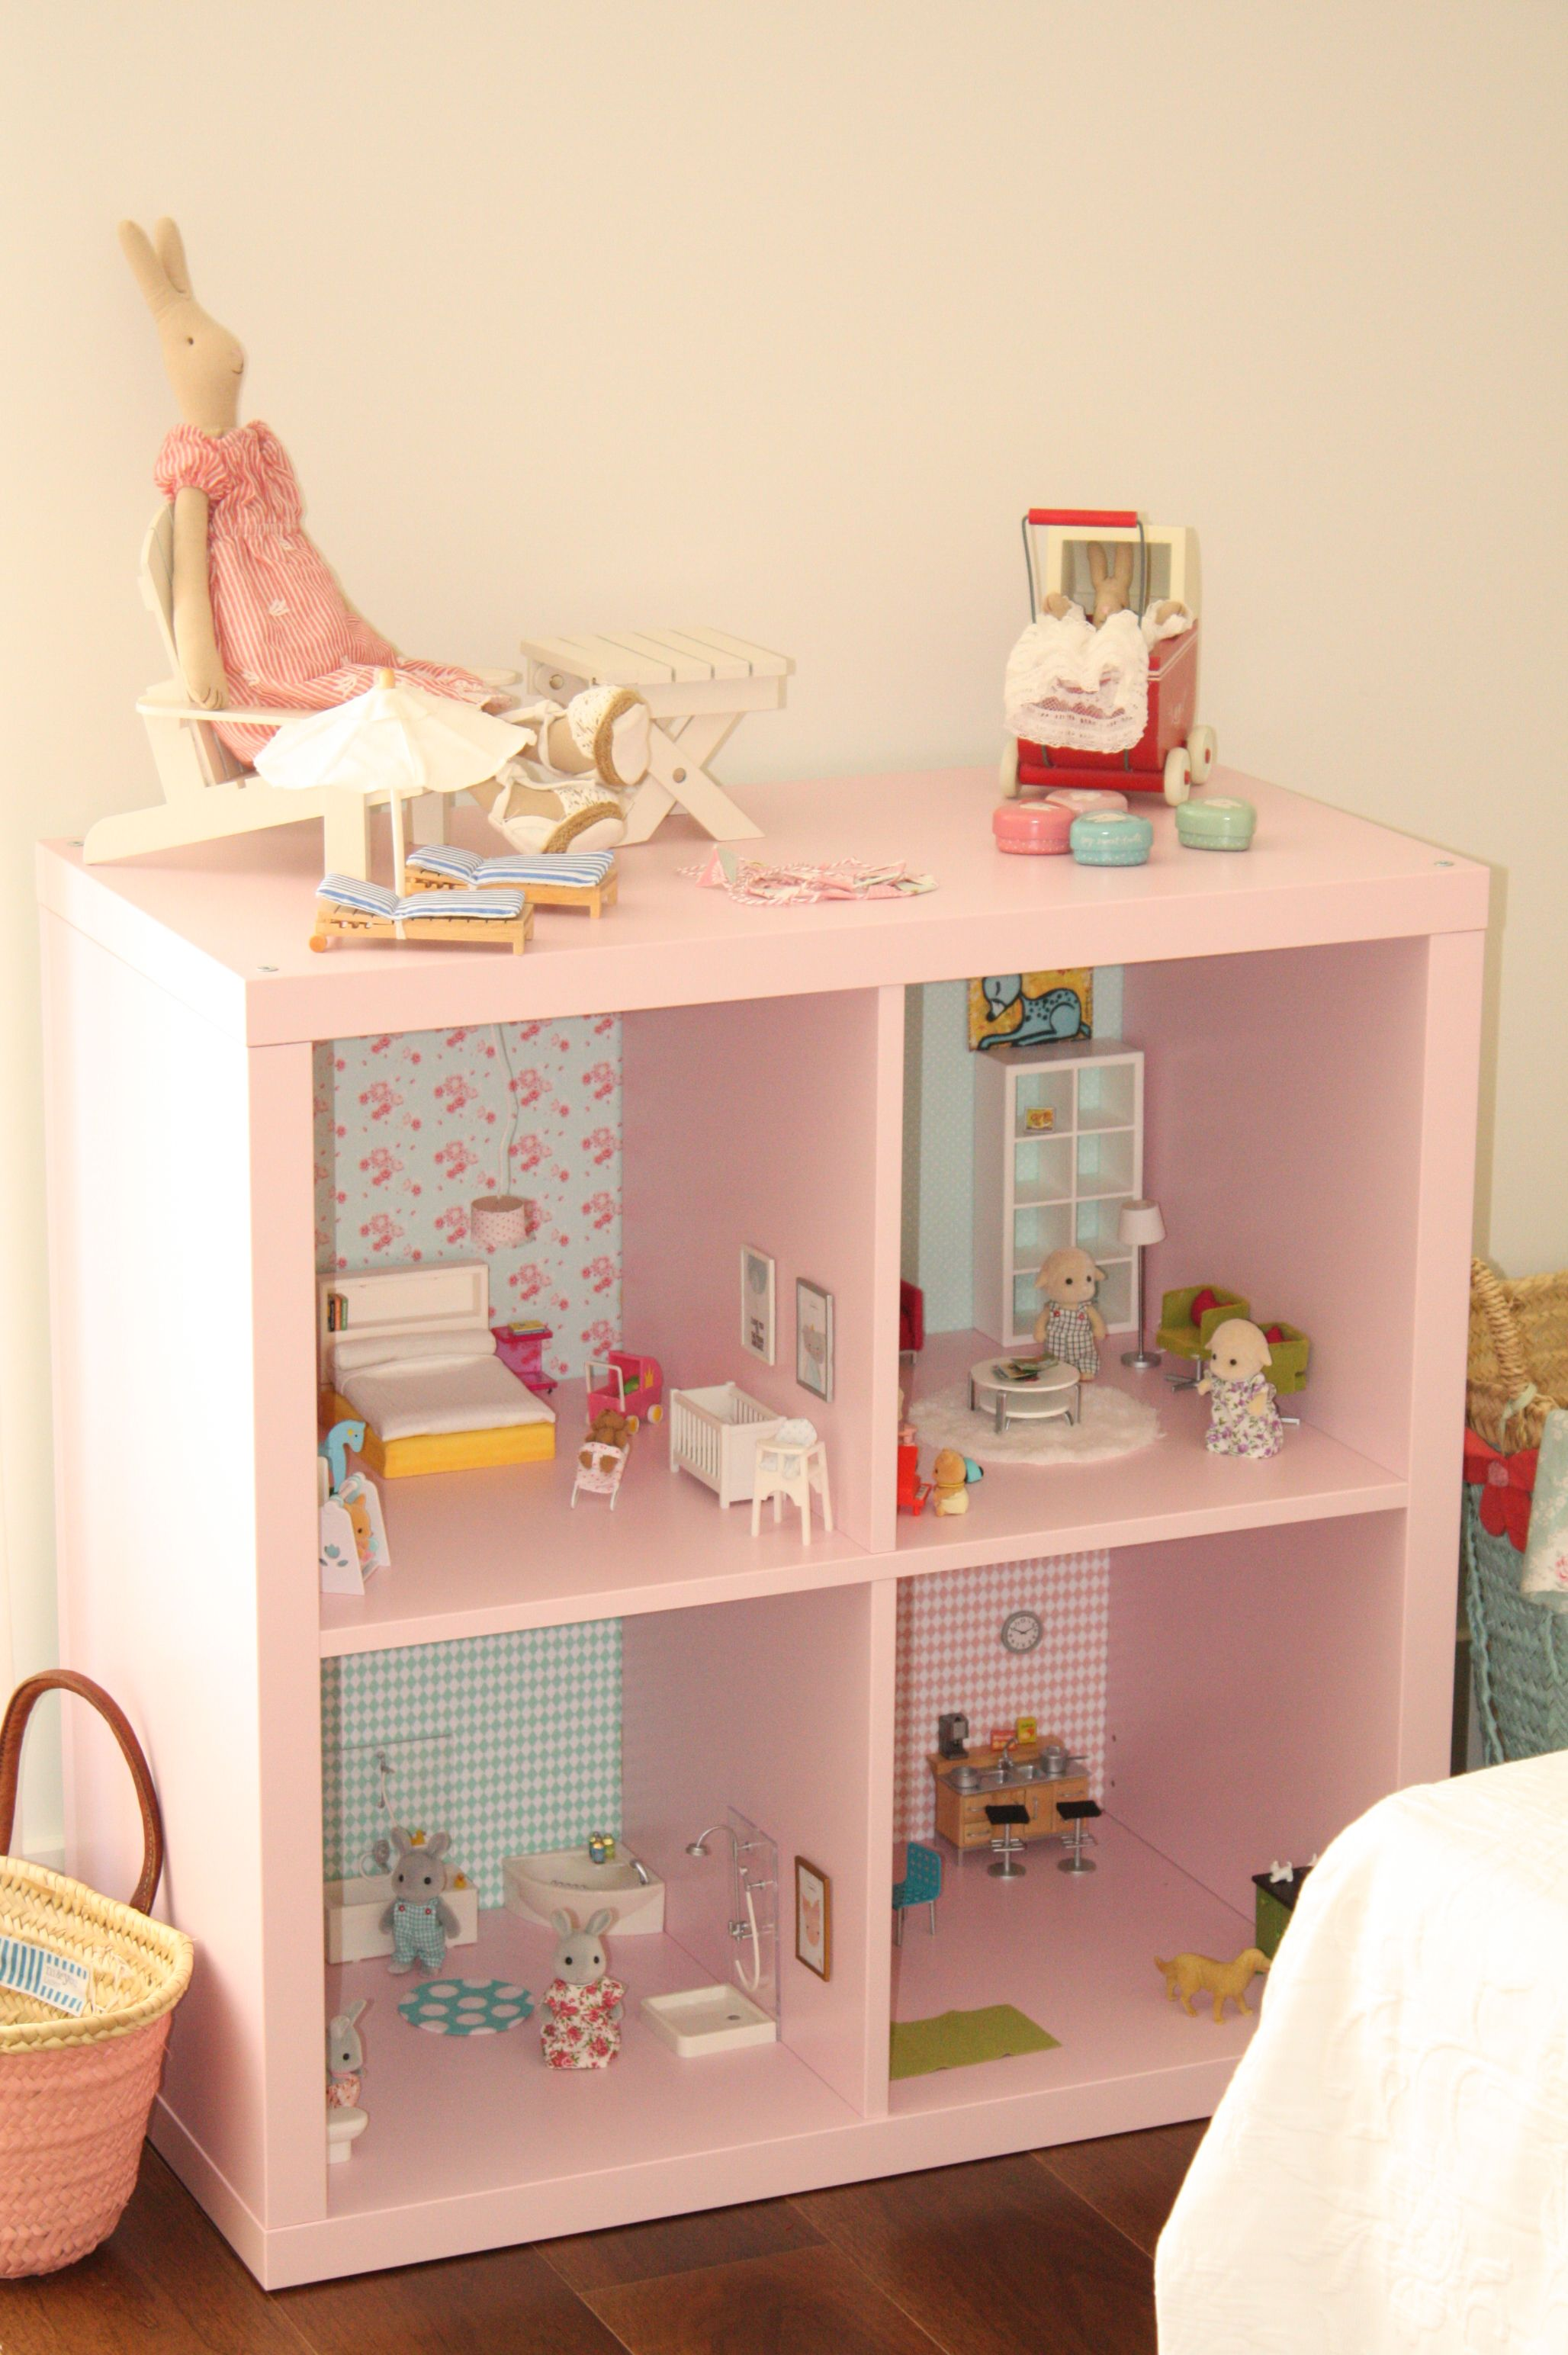 ikea dolls house furniture. Ikea Doll Furniture. Sylvanian Families Dollhouse Cube Turning Into A House Day Furniture Dolls